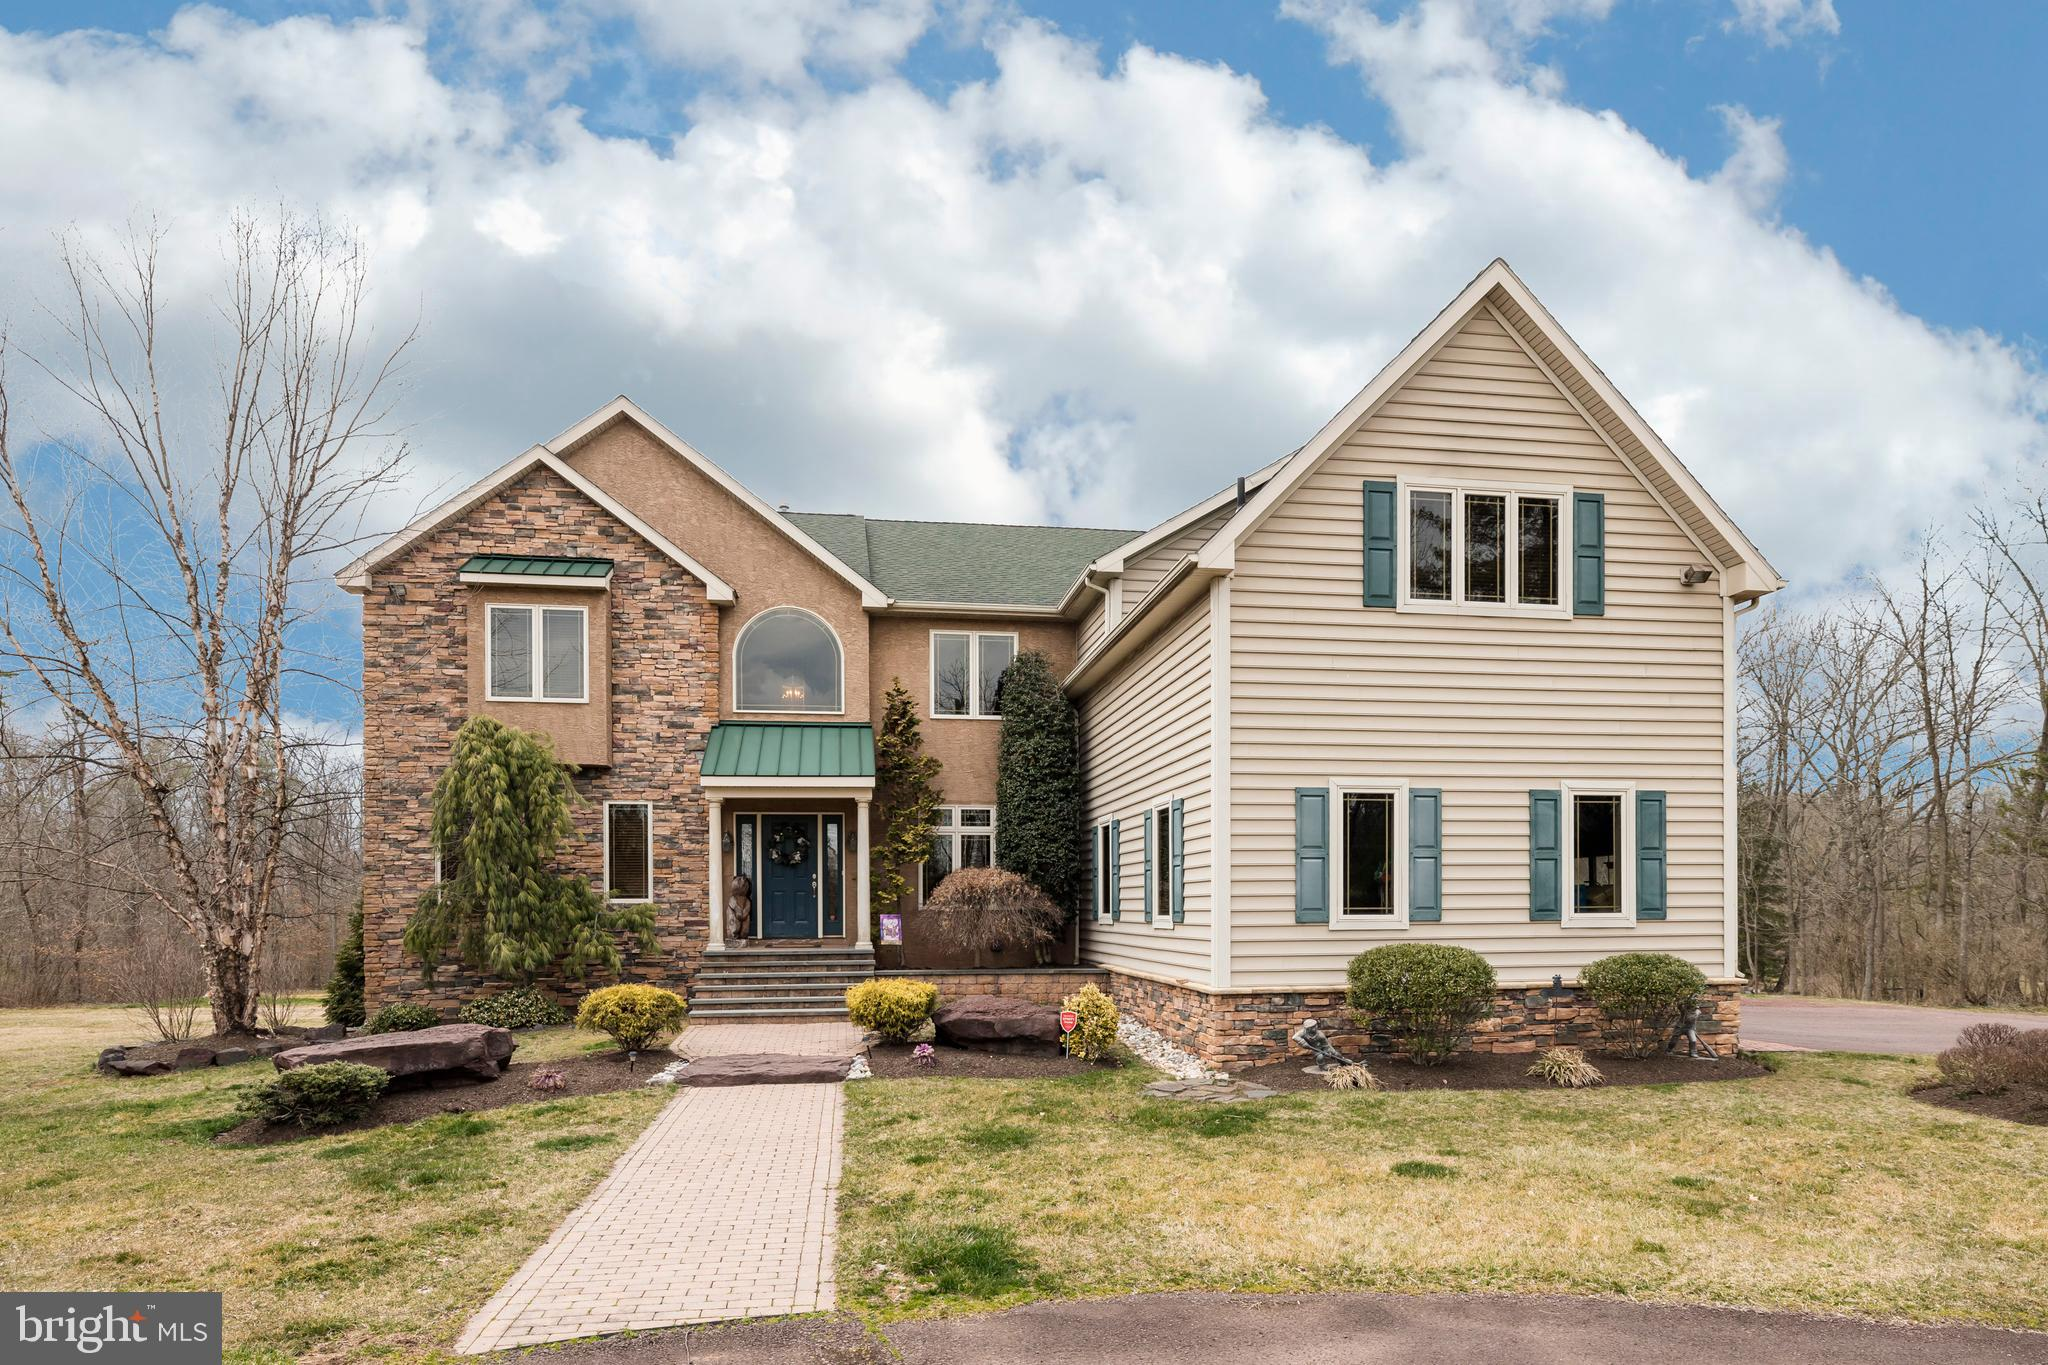 2030 OLD FORTY FOOT ROAD, HARLEYSVILLE, PA 19438